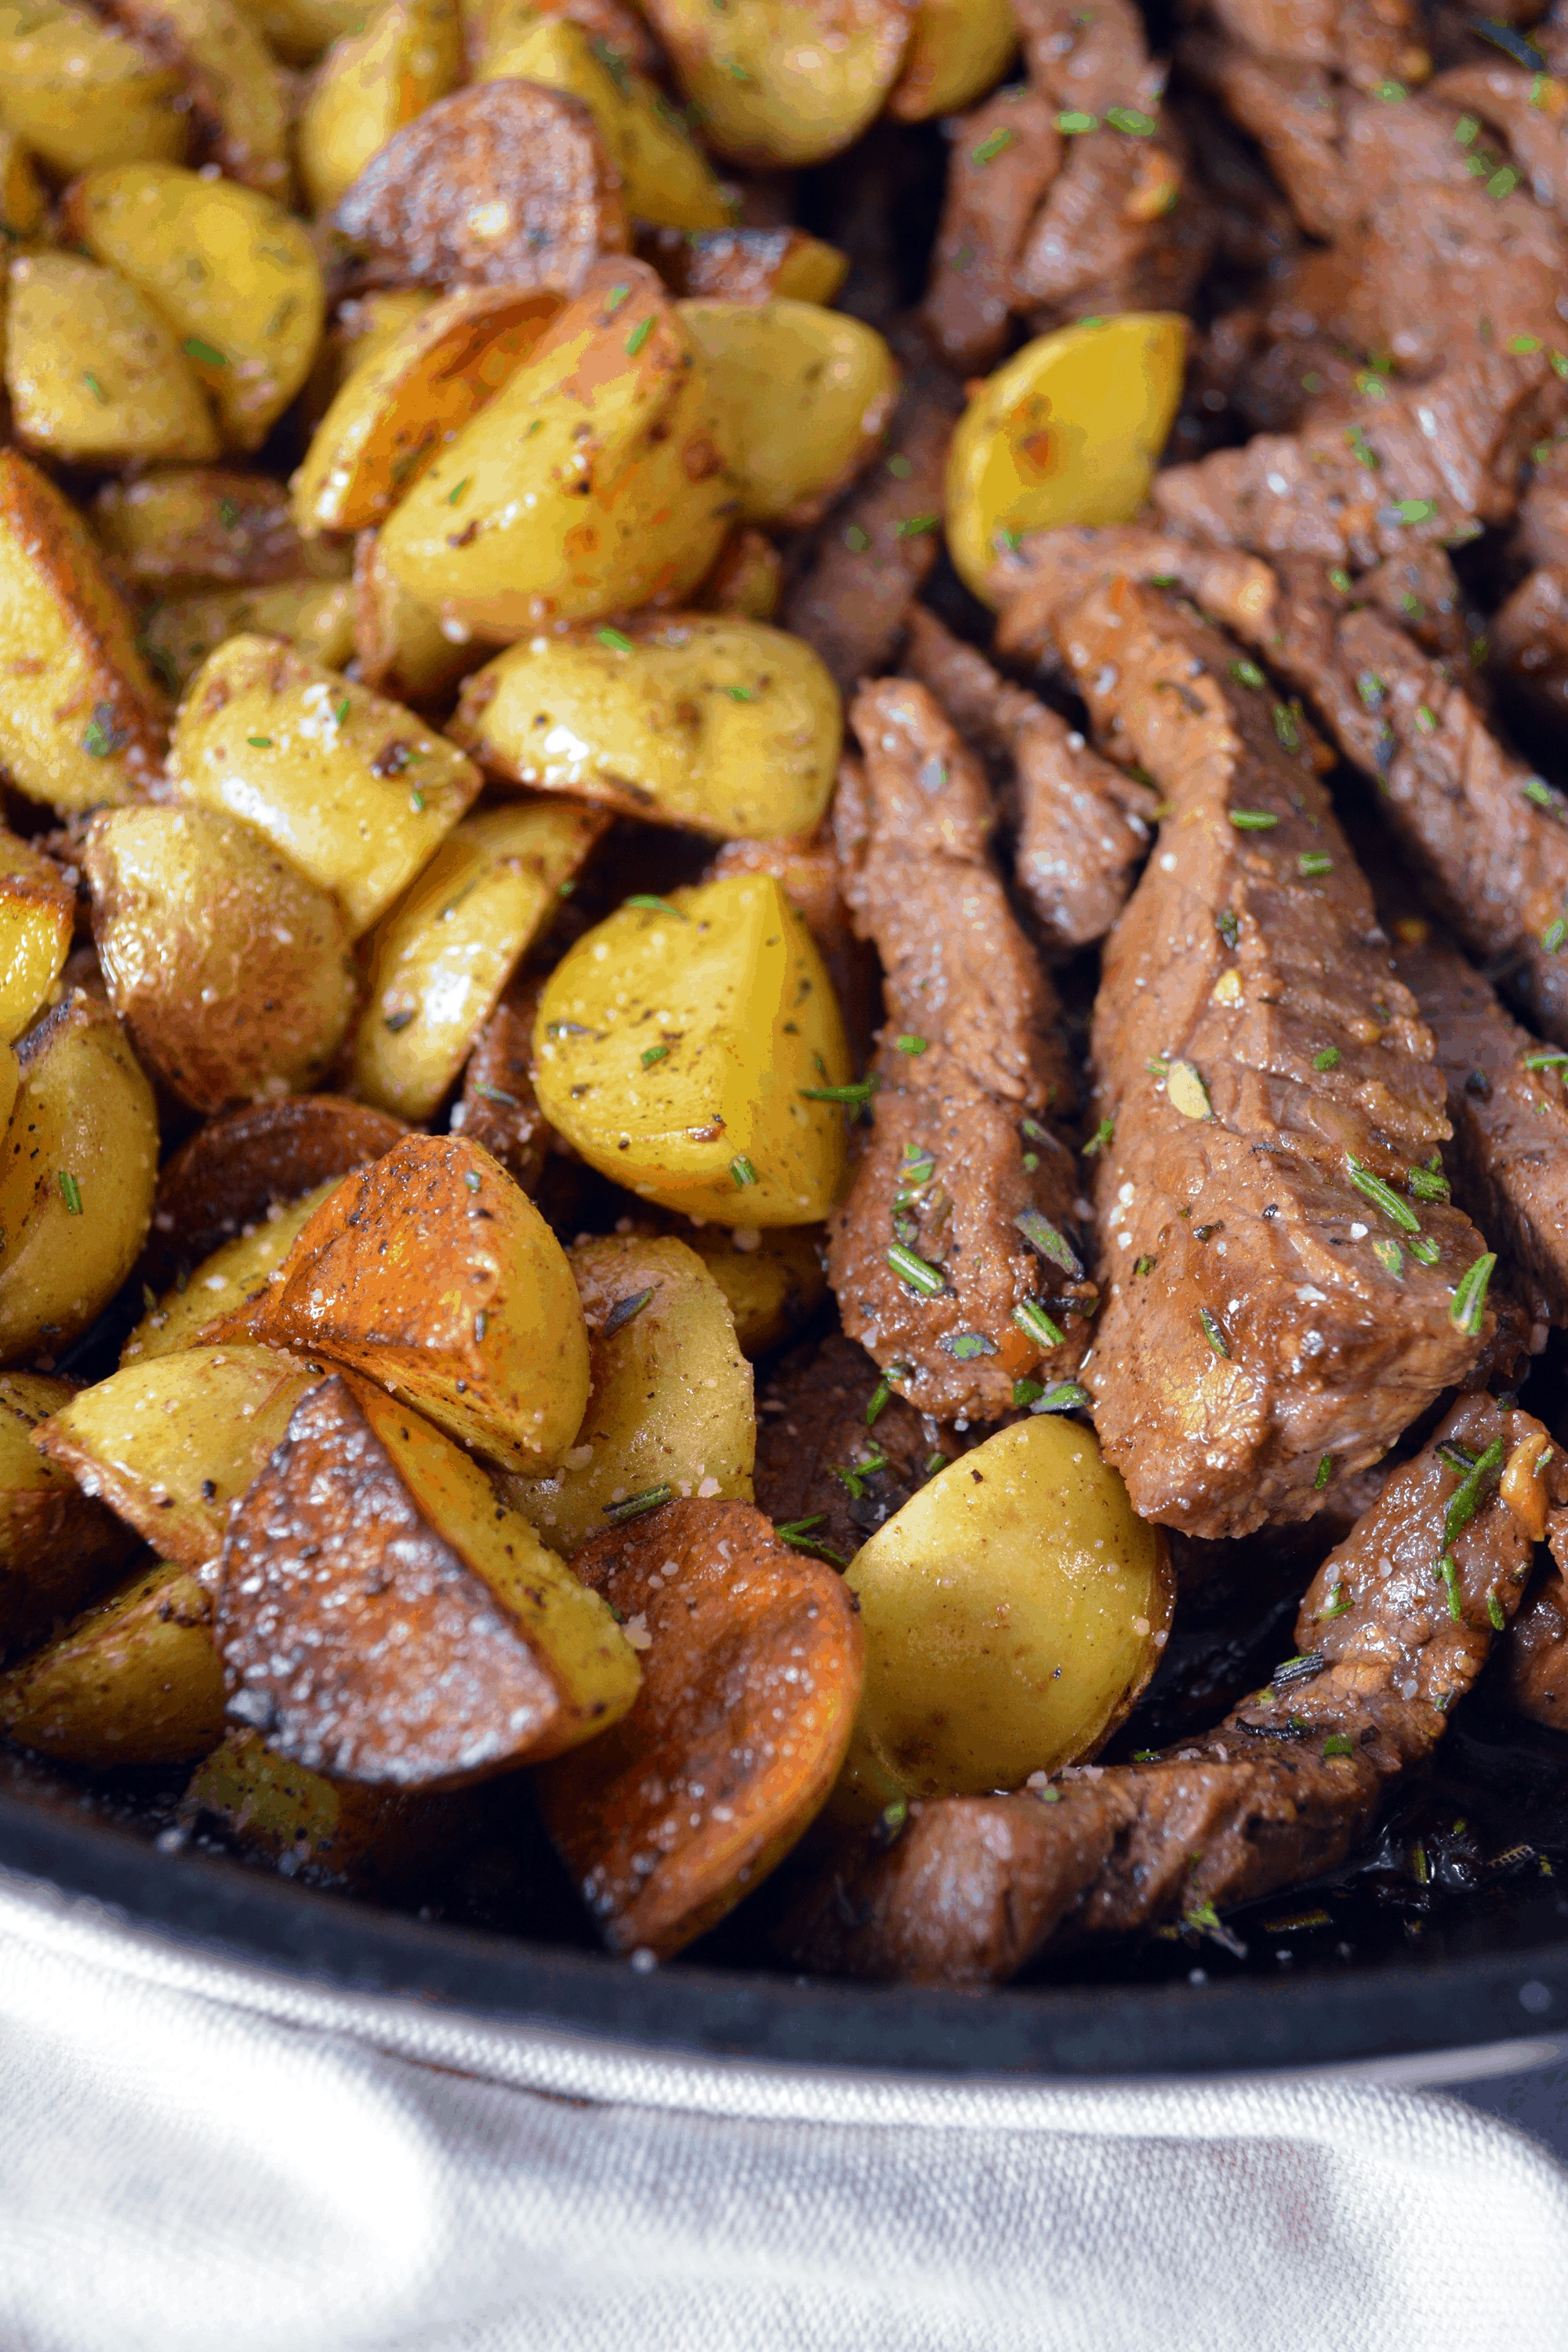 seared potatoes and steak